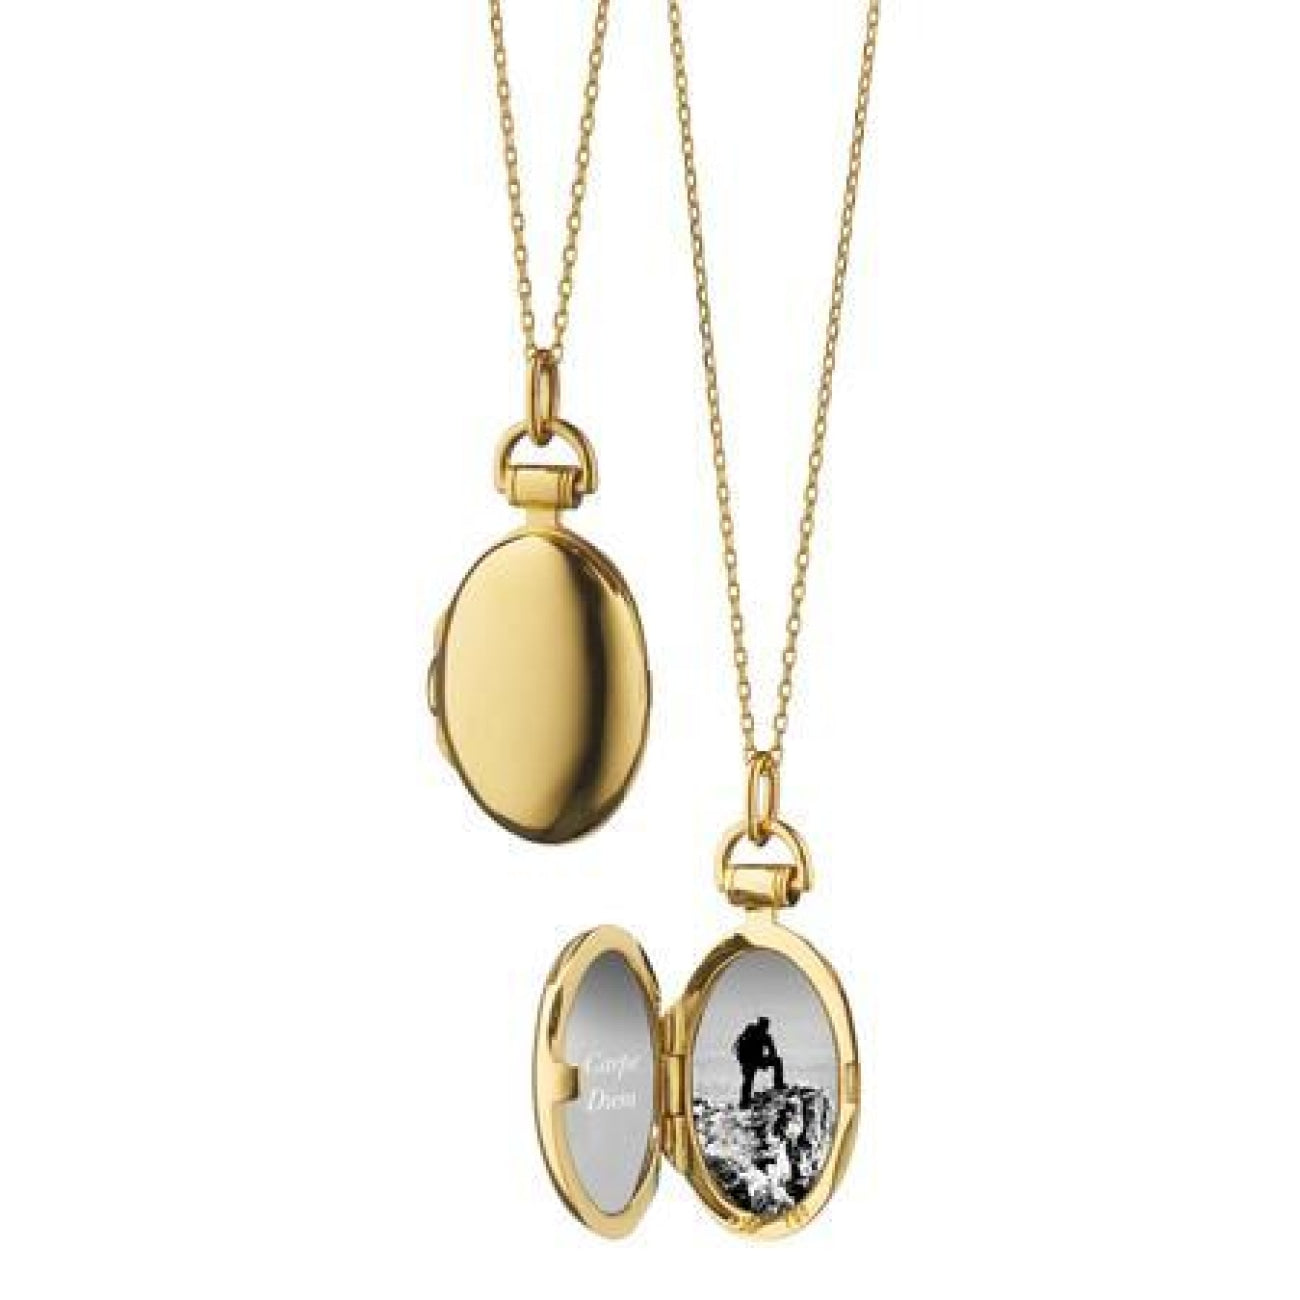 Monica Rich Kosann Jewelry - 18K YELLOW GOLD PETITE ANNA LOCKET NECKLACE | Manfredi Jewels